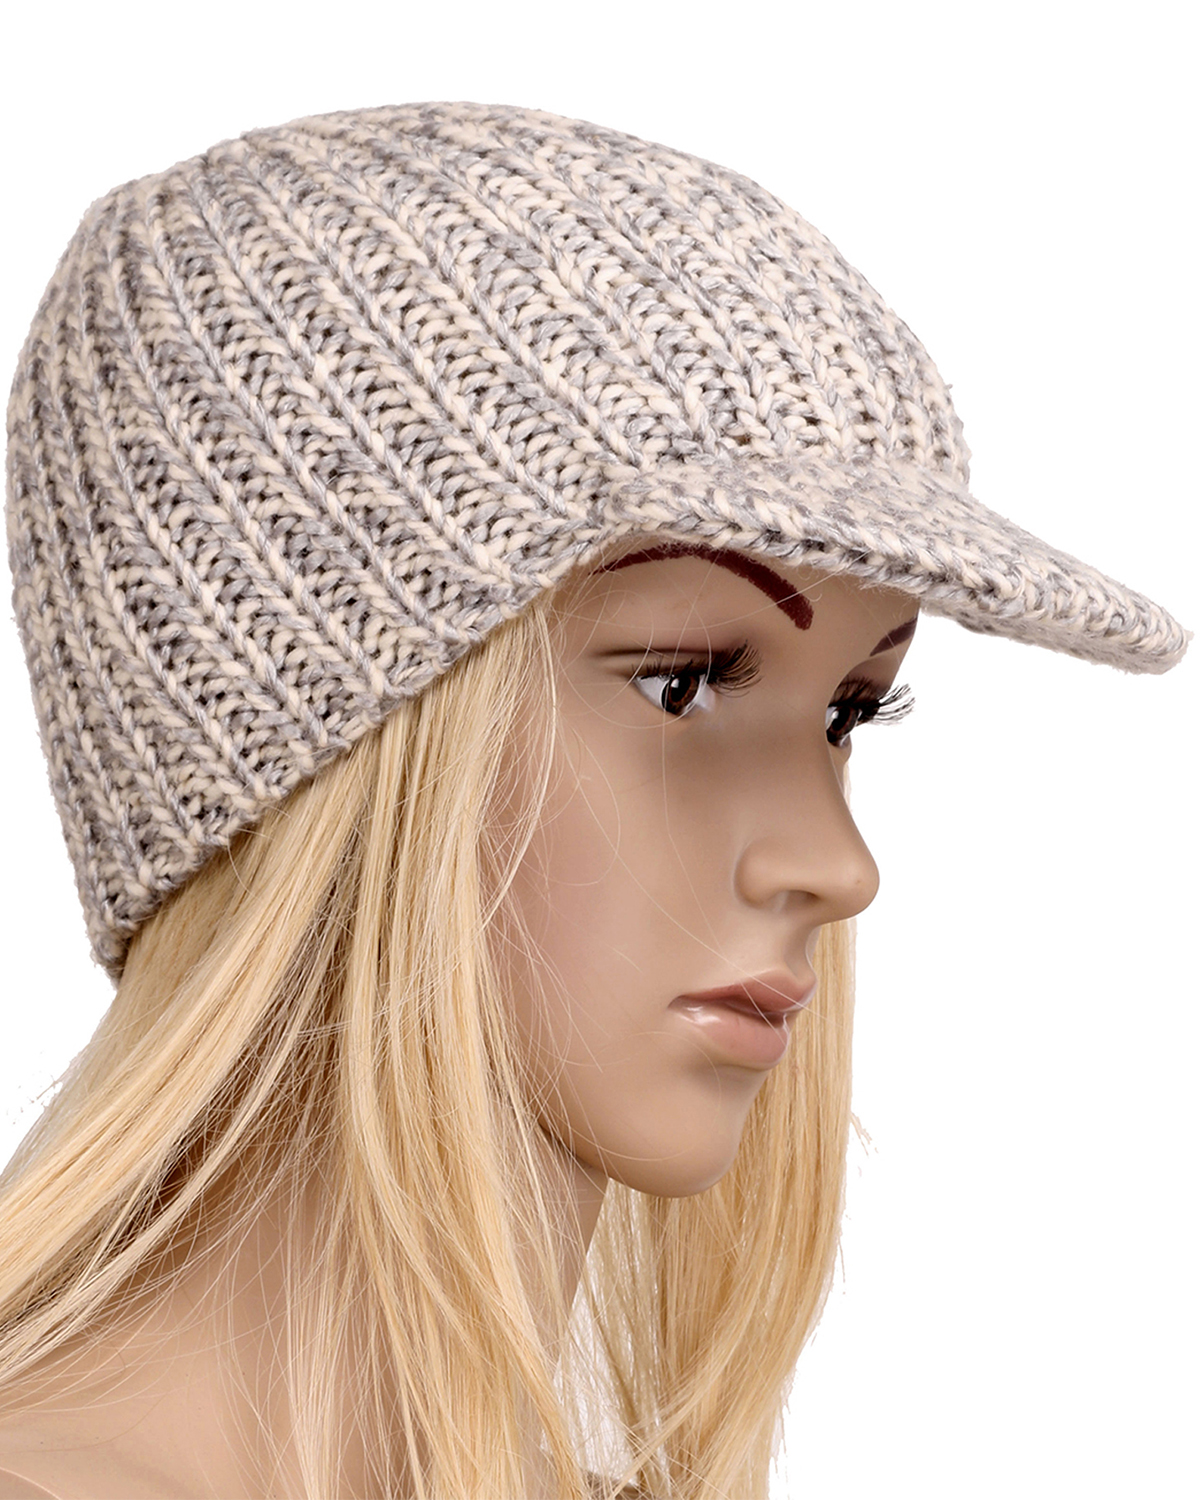 Beanies Winter Hats For Women Knitted Warm Cap Beanie Hat Autu Soft Knit  Caps Trendy Crochet Slouchy Chic Visors Cap d246bbb7d77b